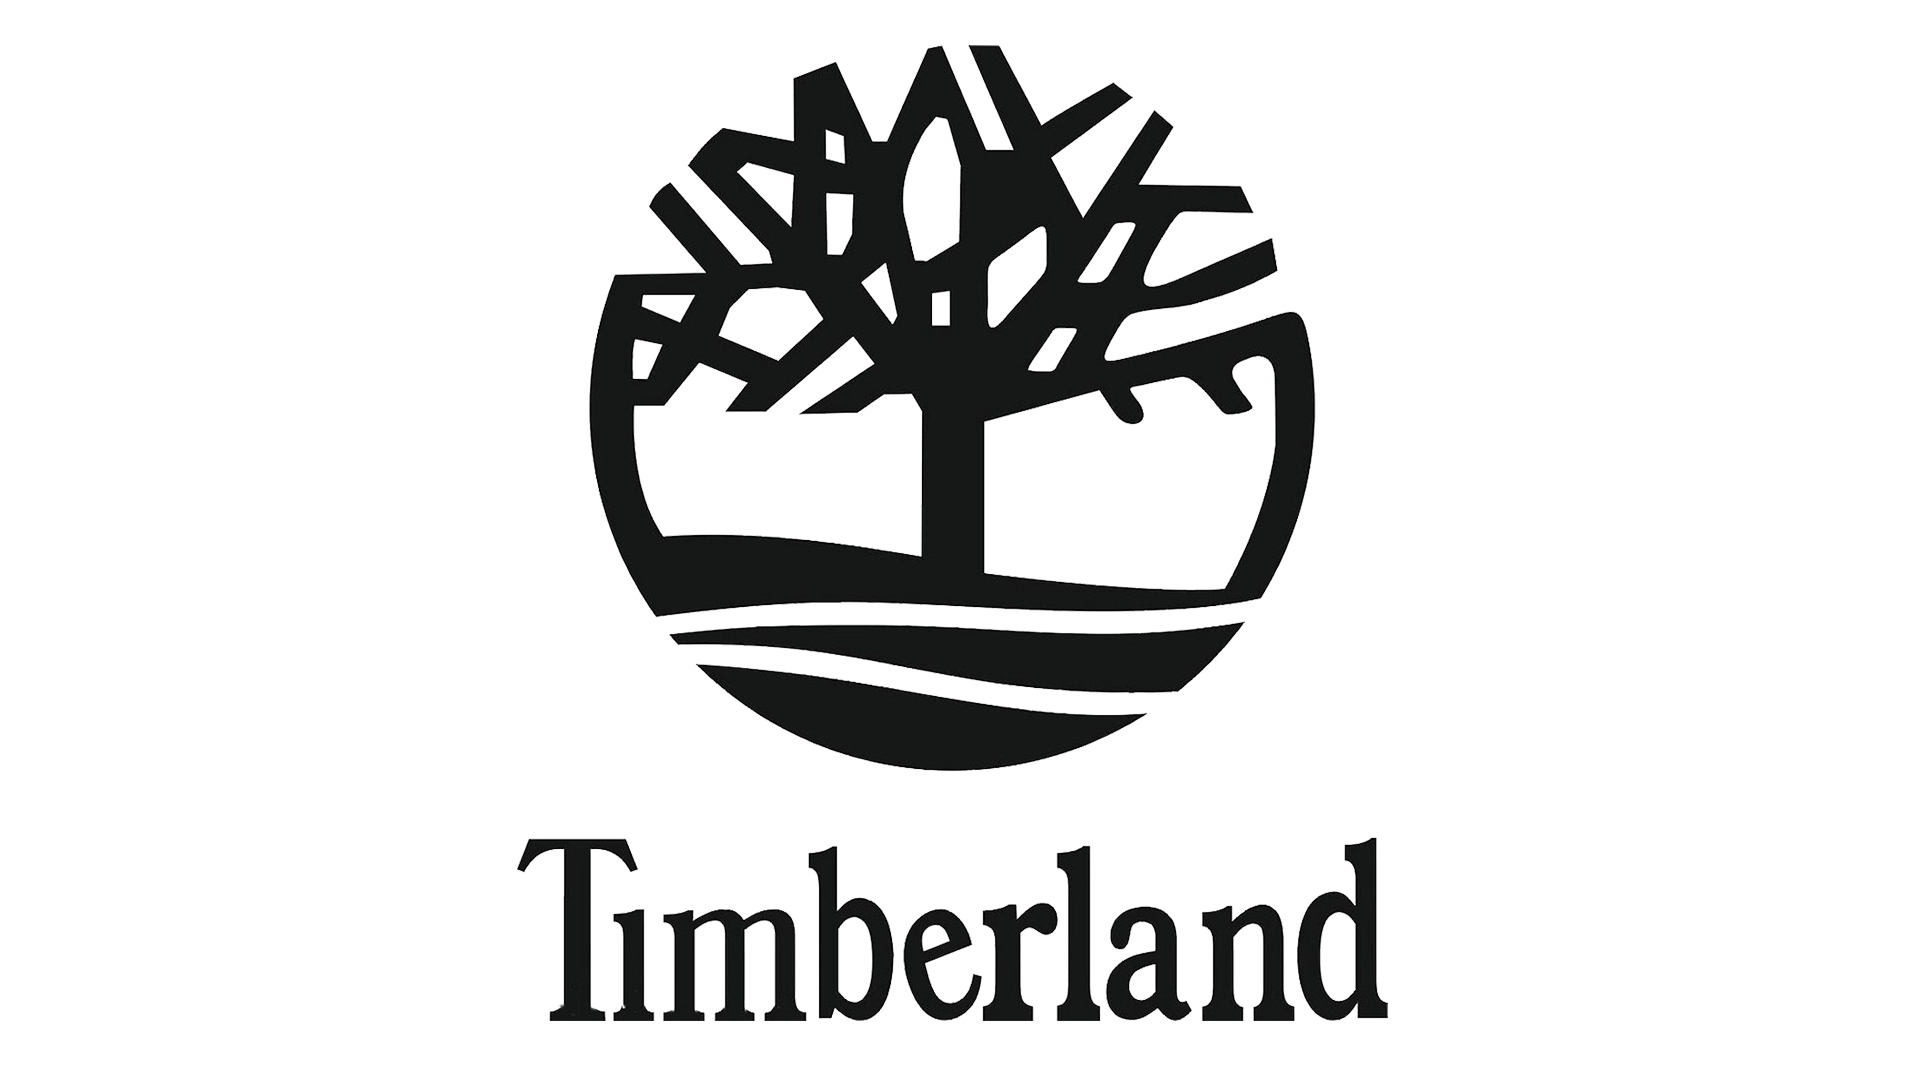 Timberland Logo - Timberland Logo, Timberland Symbol, Meaning, History and Evolution